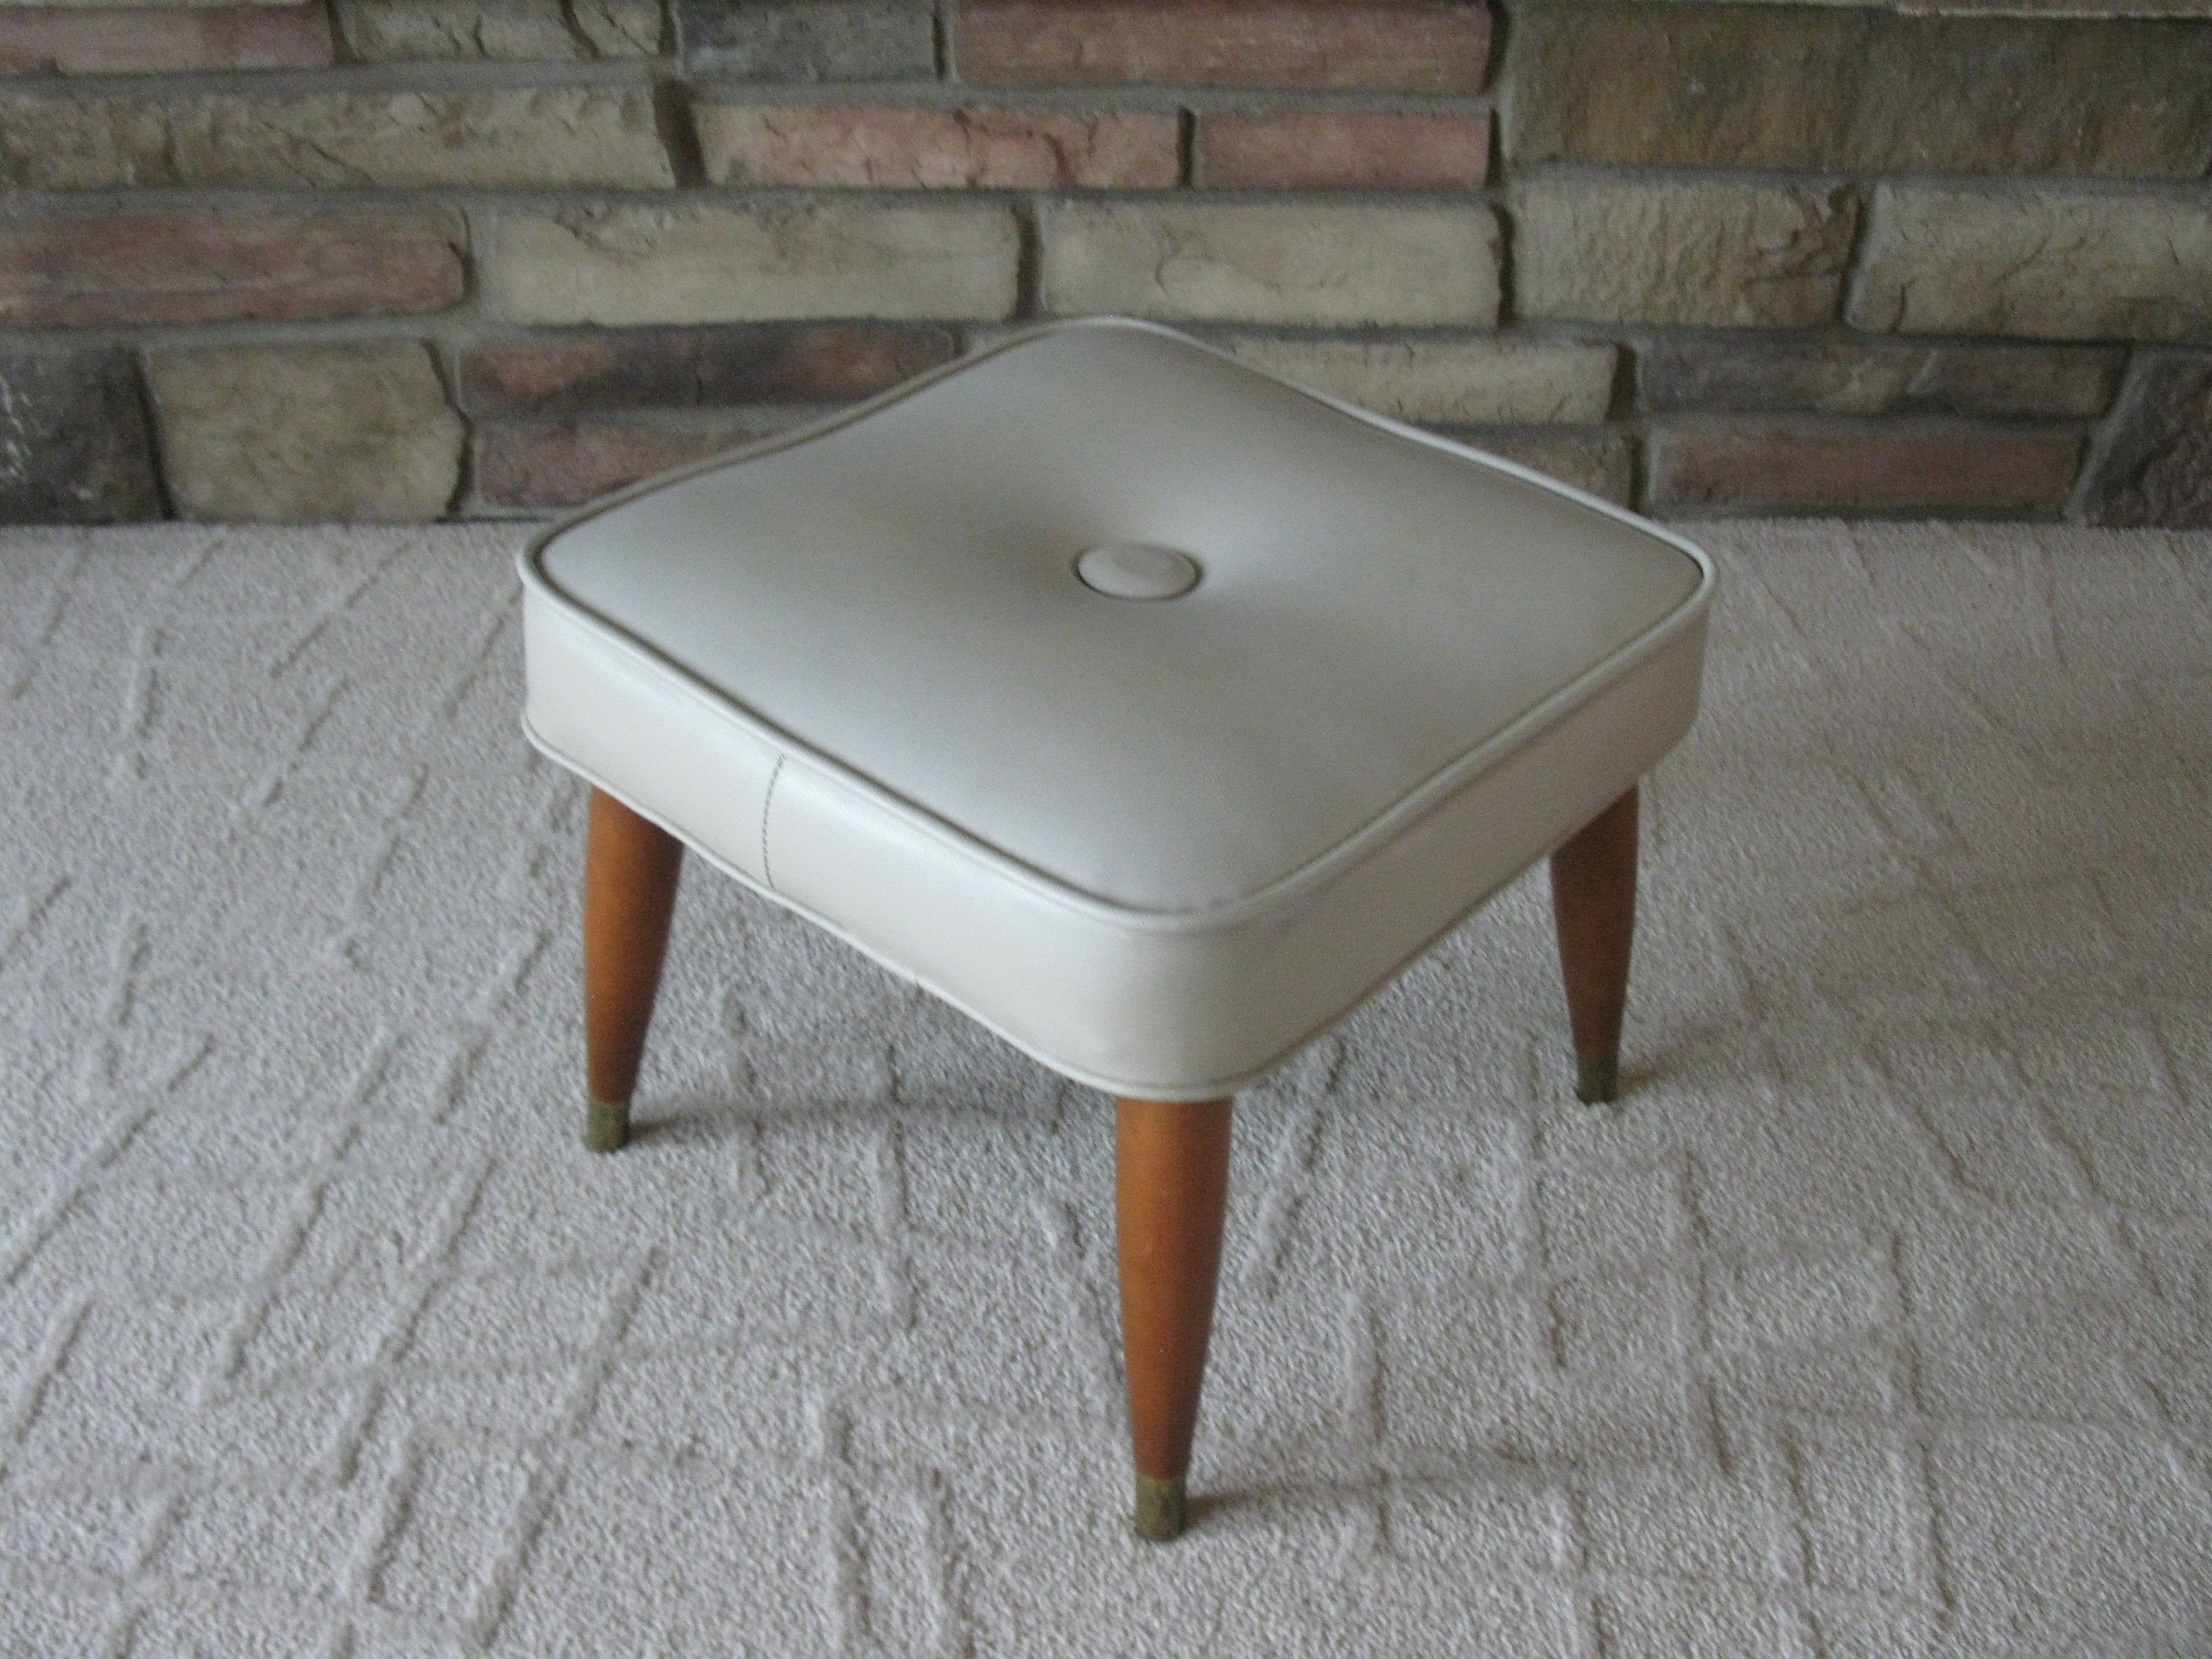 Large Vinyl Footstool Retro Hassock Mid Century Light Grey Taupe Vintage Ottoman Wood Legs Brass Feet Padded Stool Mad Men 60s Padded Stool Wood Legs Footstool